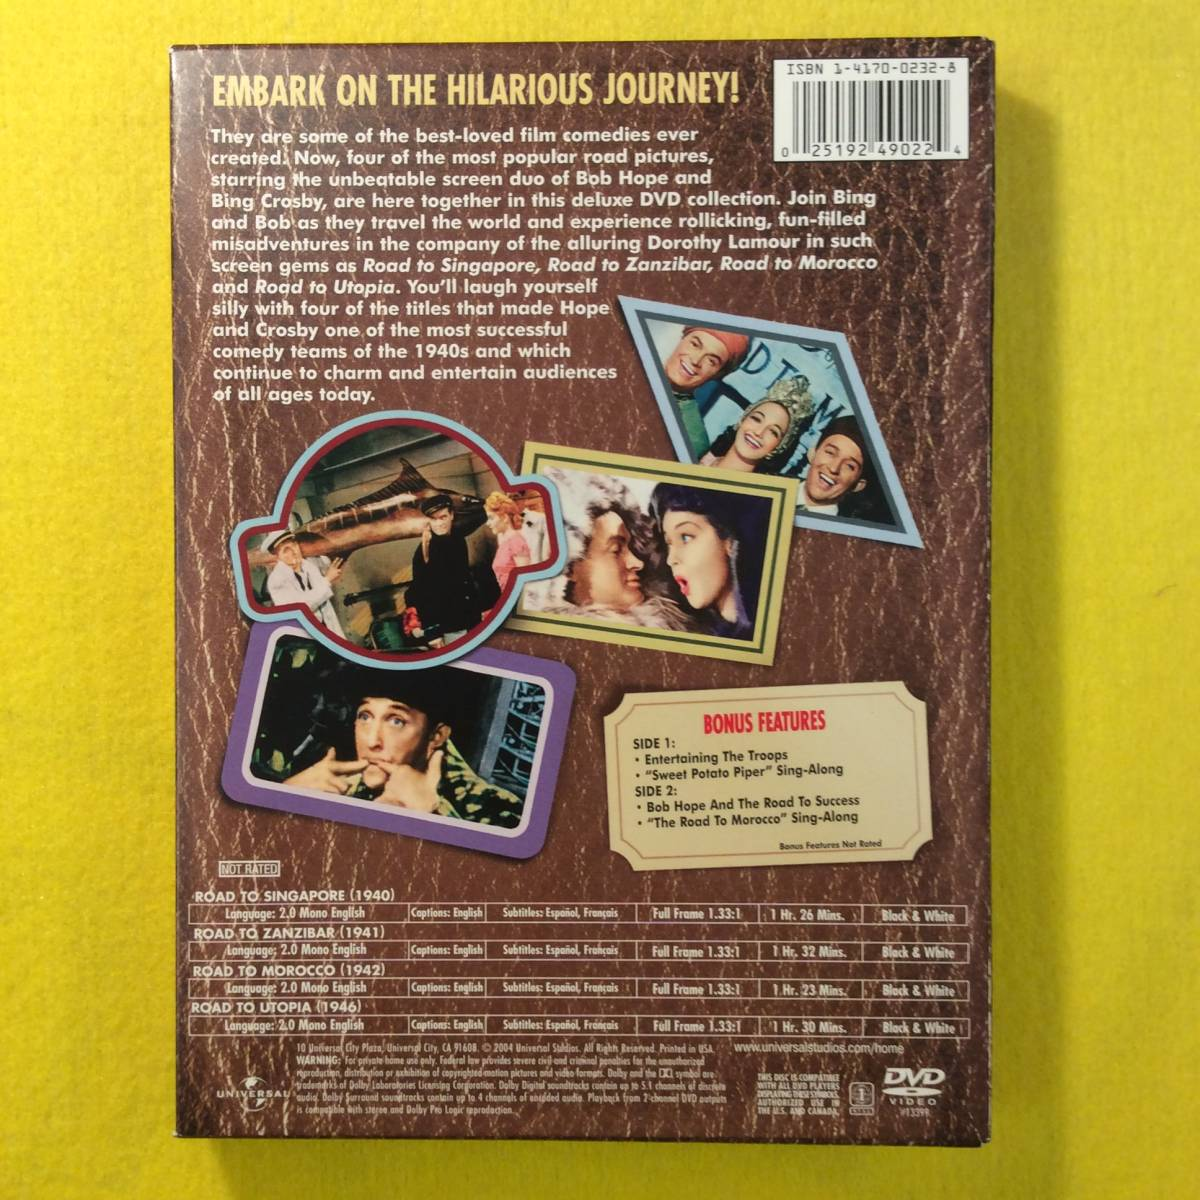 【DVD】珍道中シリーズ★ON THE ROAD with BOB HOPE and BING CROSBY★輸入盤・リージョン1★ボブ・ホープ/ビング・クロスビー★映画_画像2